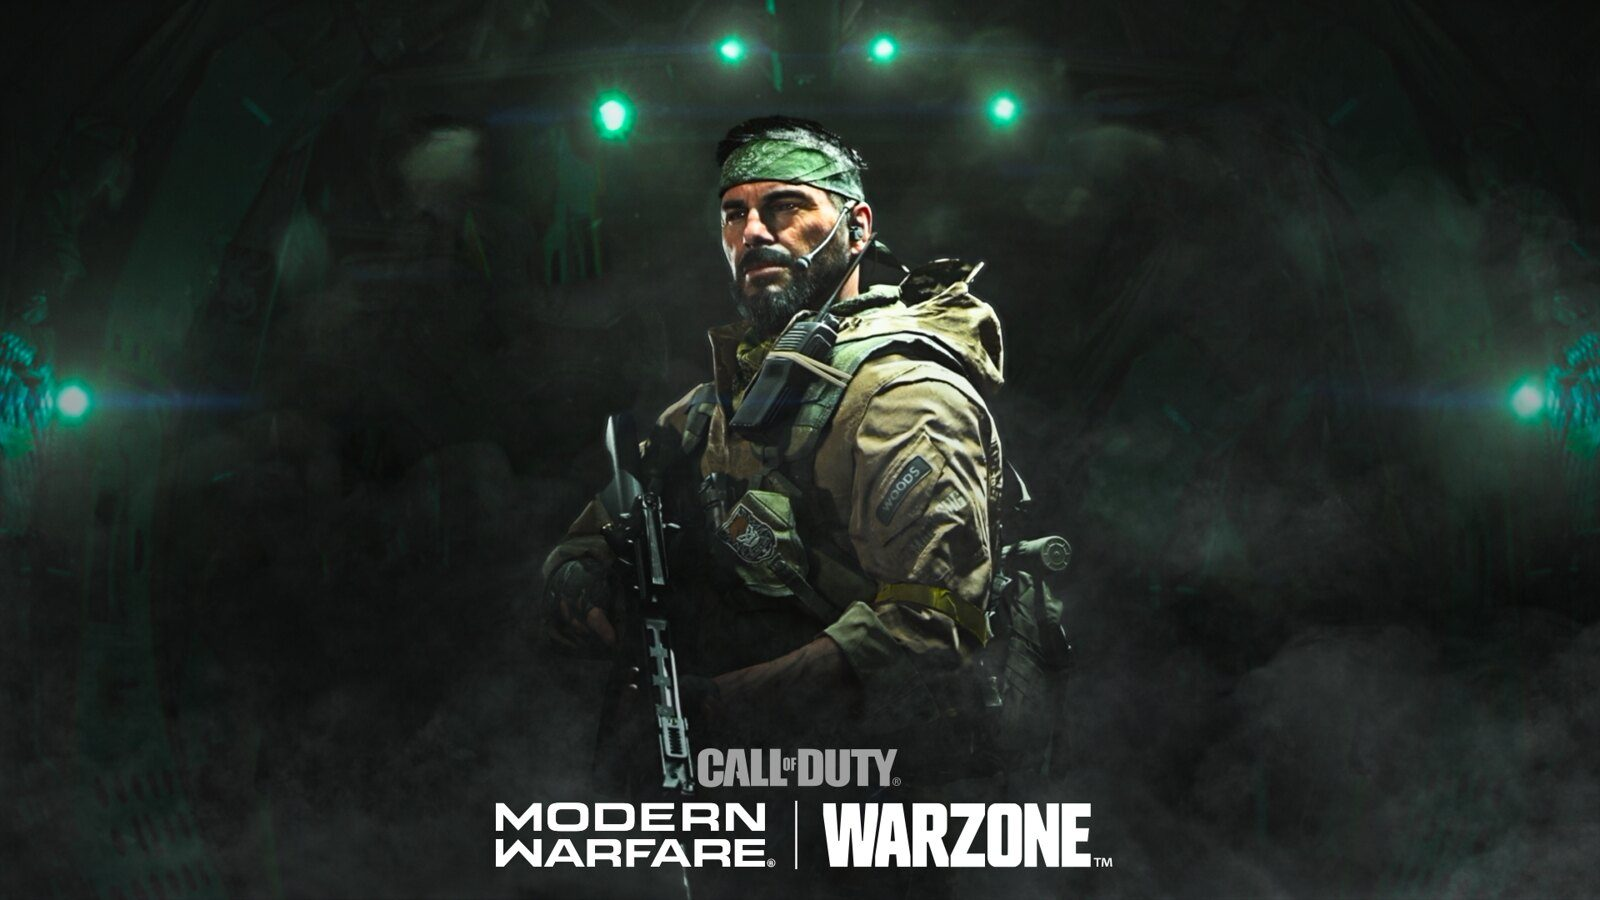 Call Of Duty Black Ops Cold War Officially Revealed Launches November 13 2020 Mxdwn Games